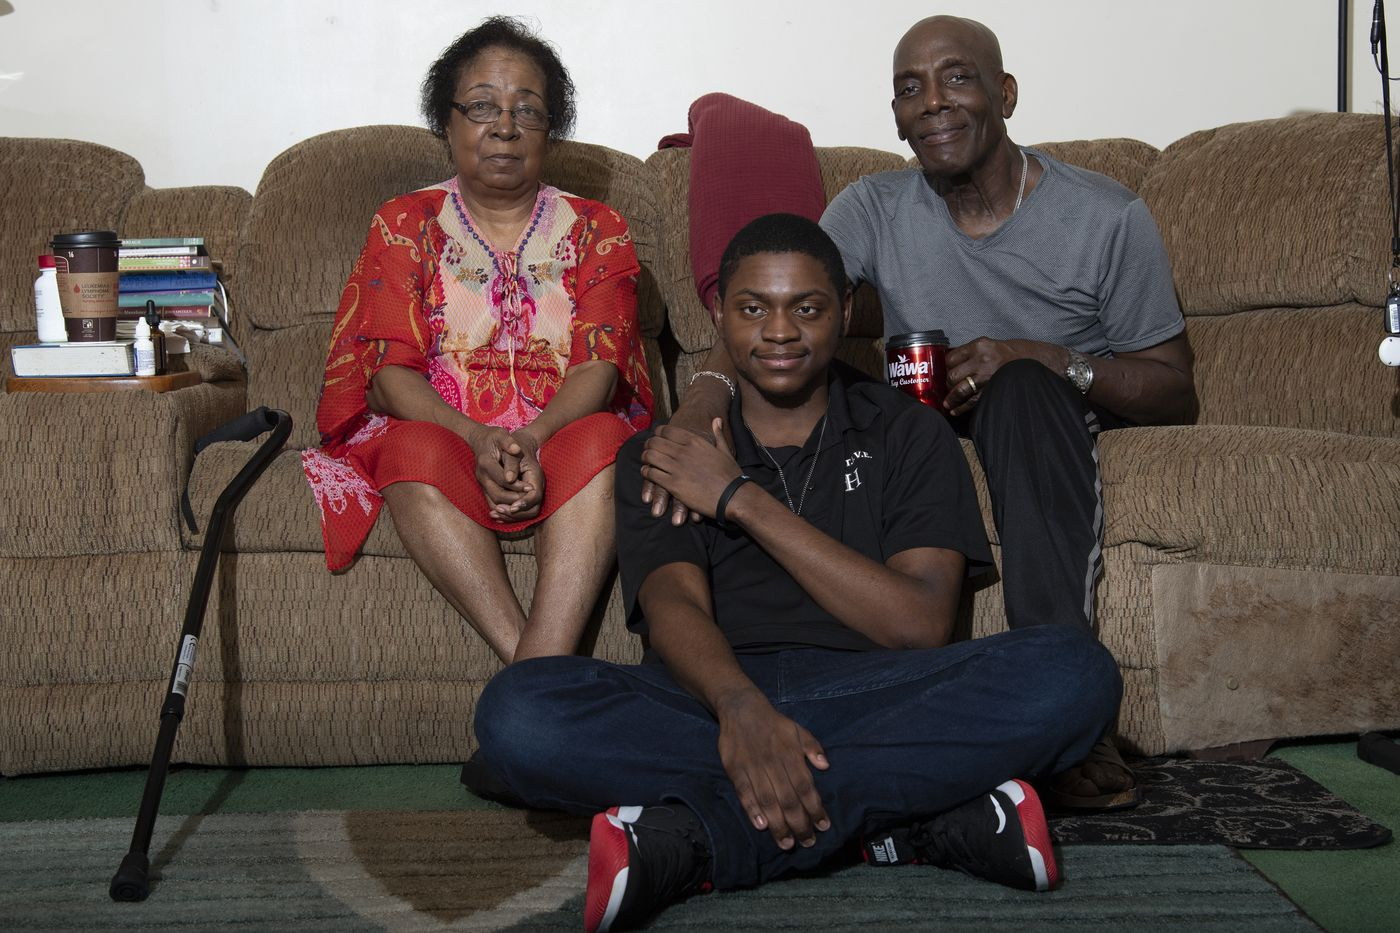 JOSE F. MORENO / STAFF PHOTOGRAPHER   Harold and Mildred Cambridge with their adoptive son Andrew at their home in Willow Grove. Andrew has fetal alcohol syndrome.